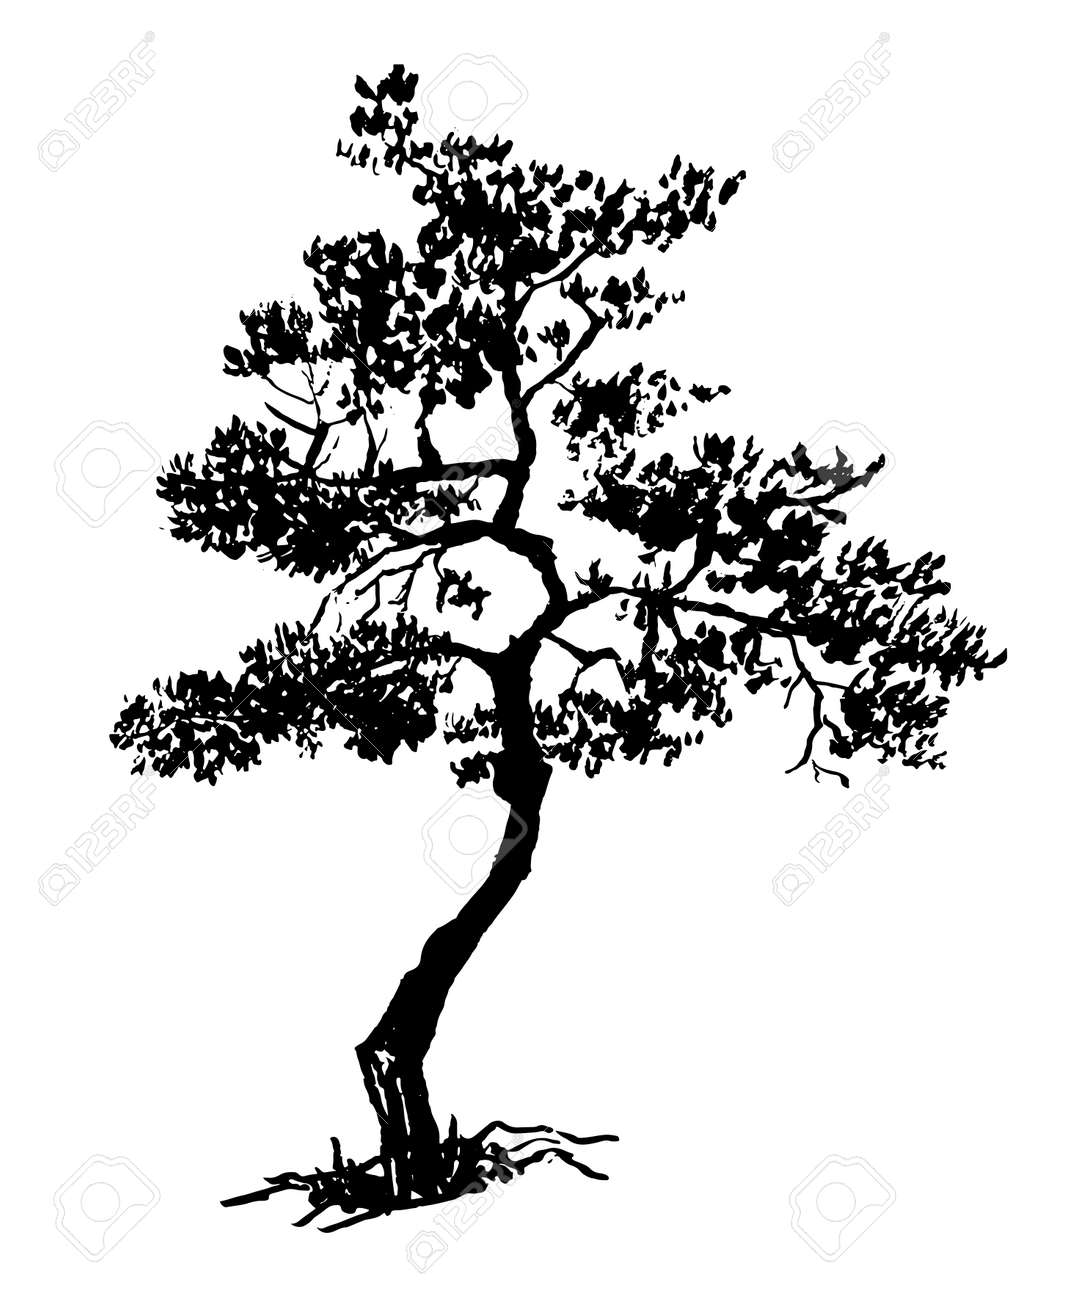 Old Dry Evergreen Tree Sketch Hand Drawn Ink Vector Illustration Royalty Free Cliparts Vectors And Stock Illustration Image 94512216